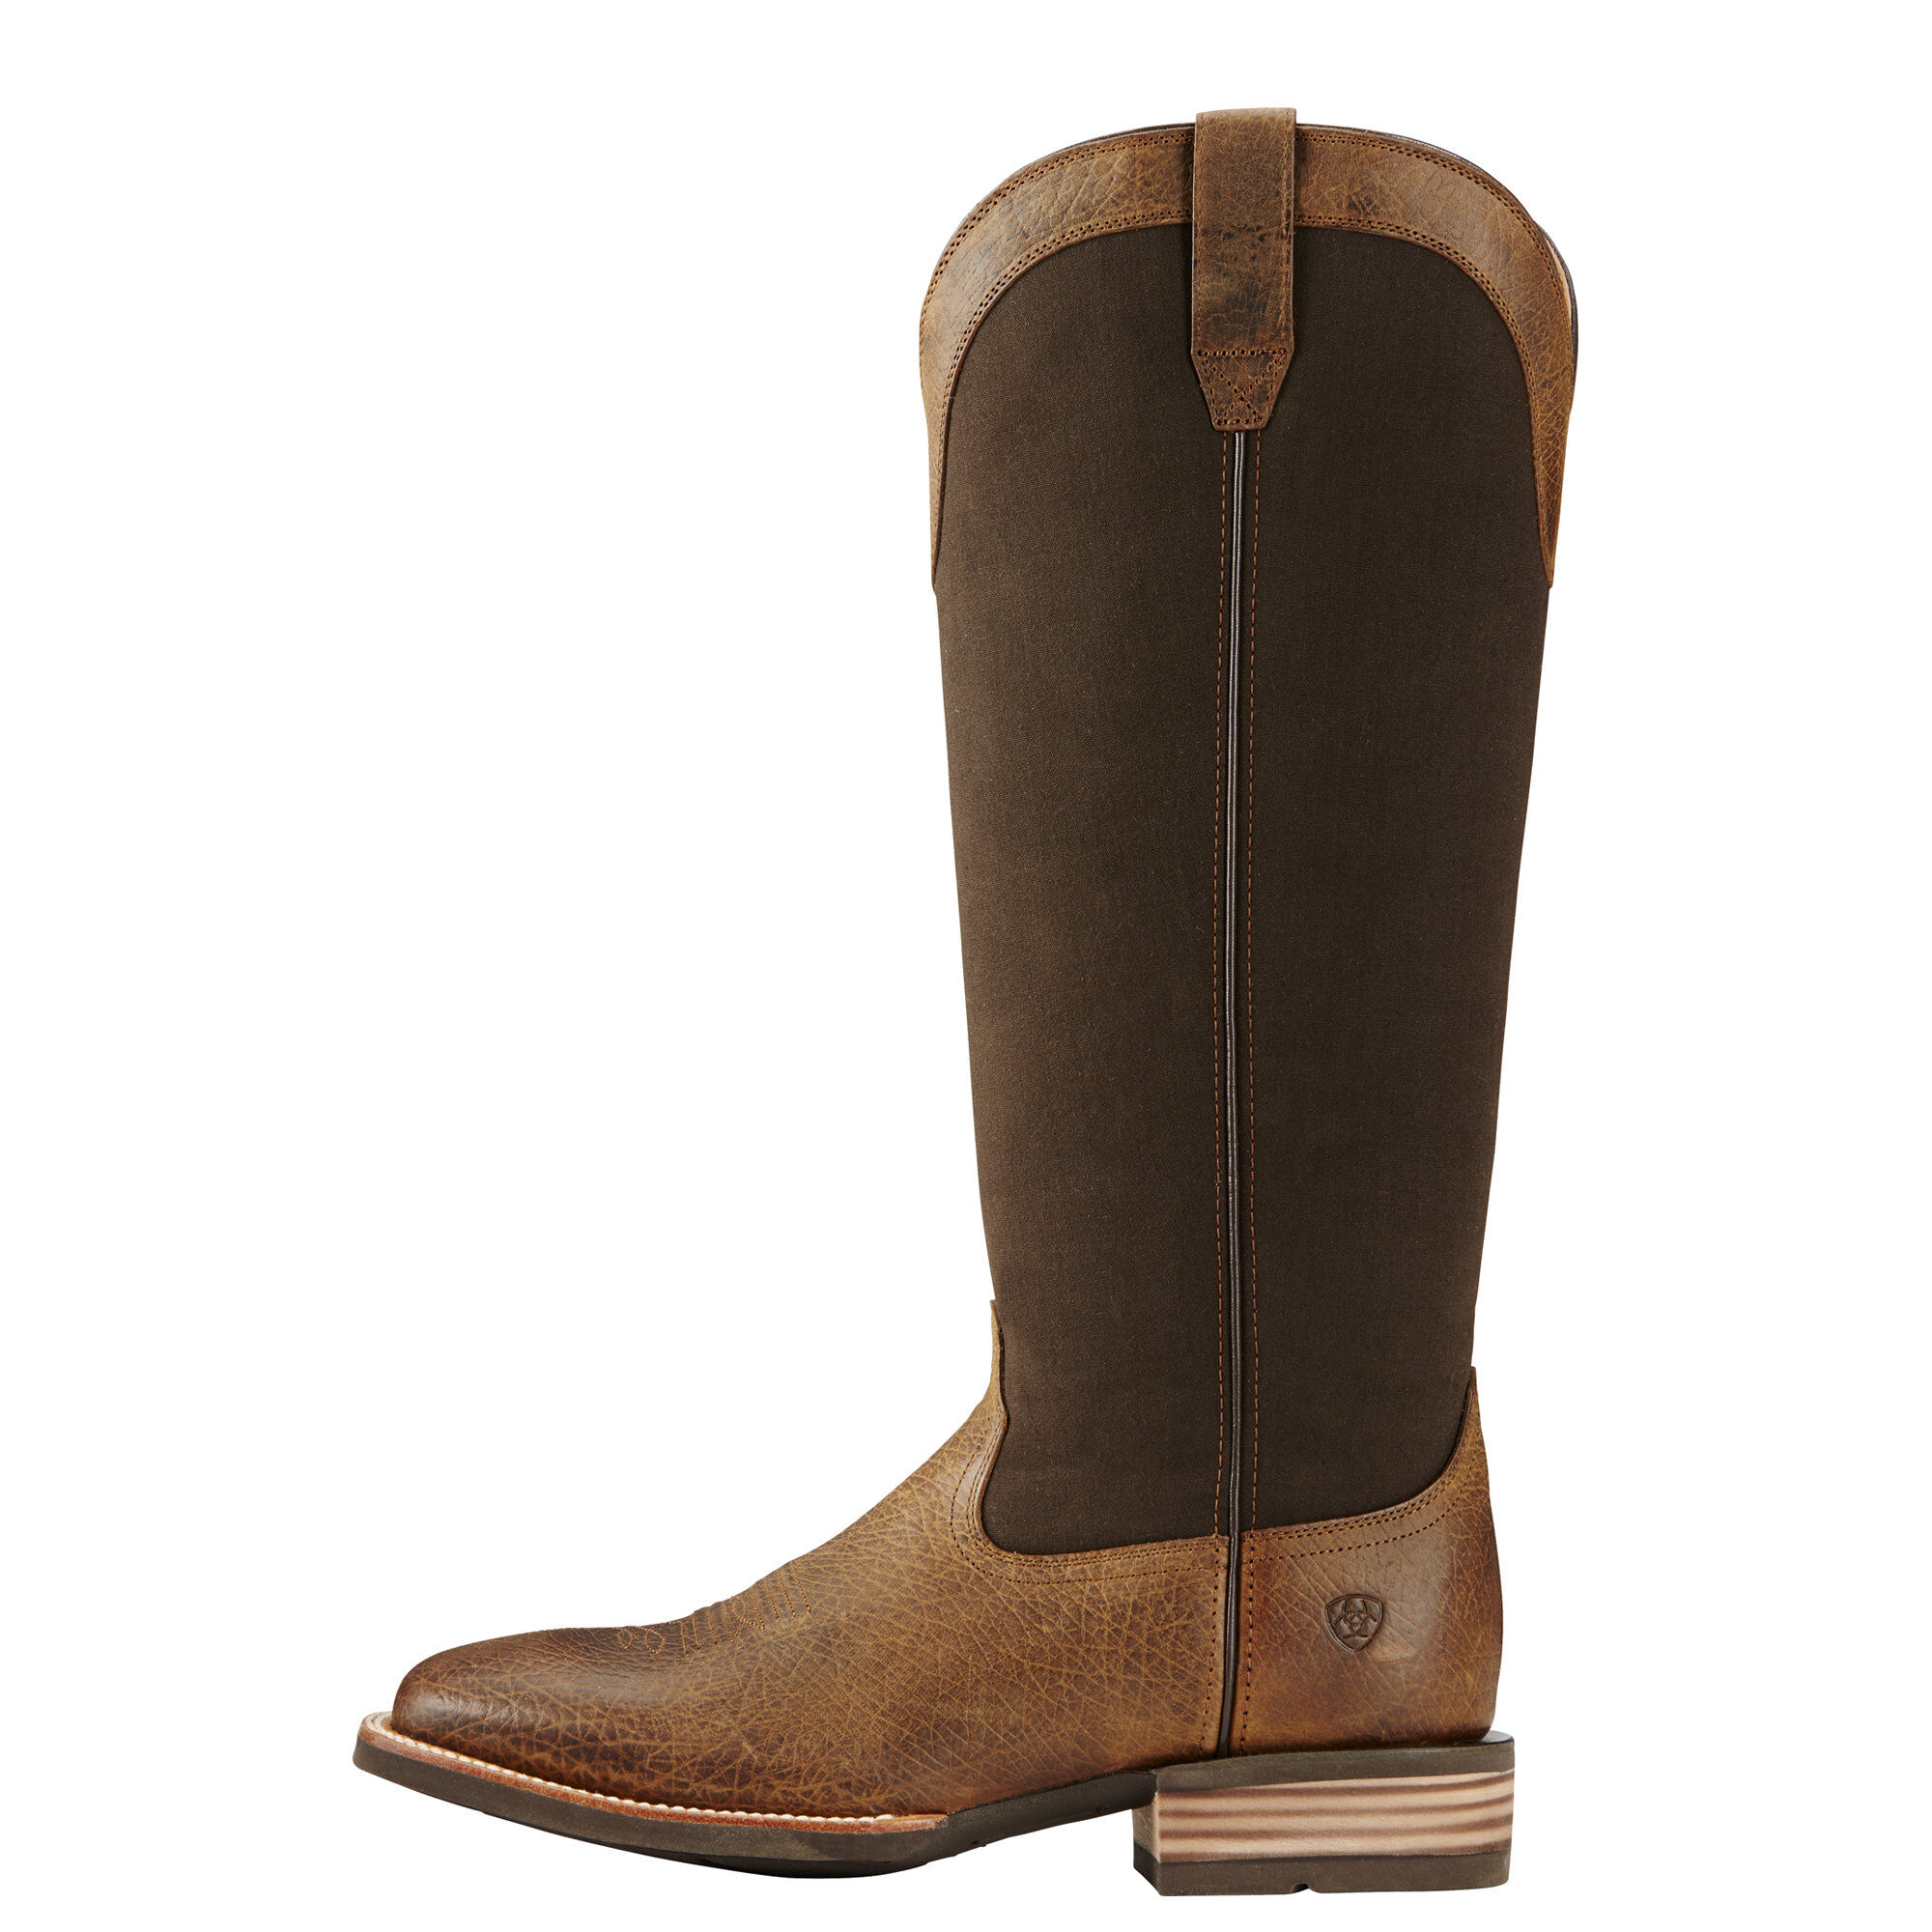 7bdfa968f79 Quickdraw Snakeboot